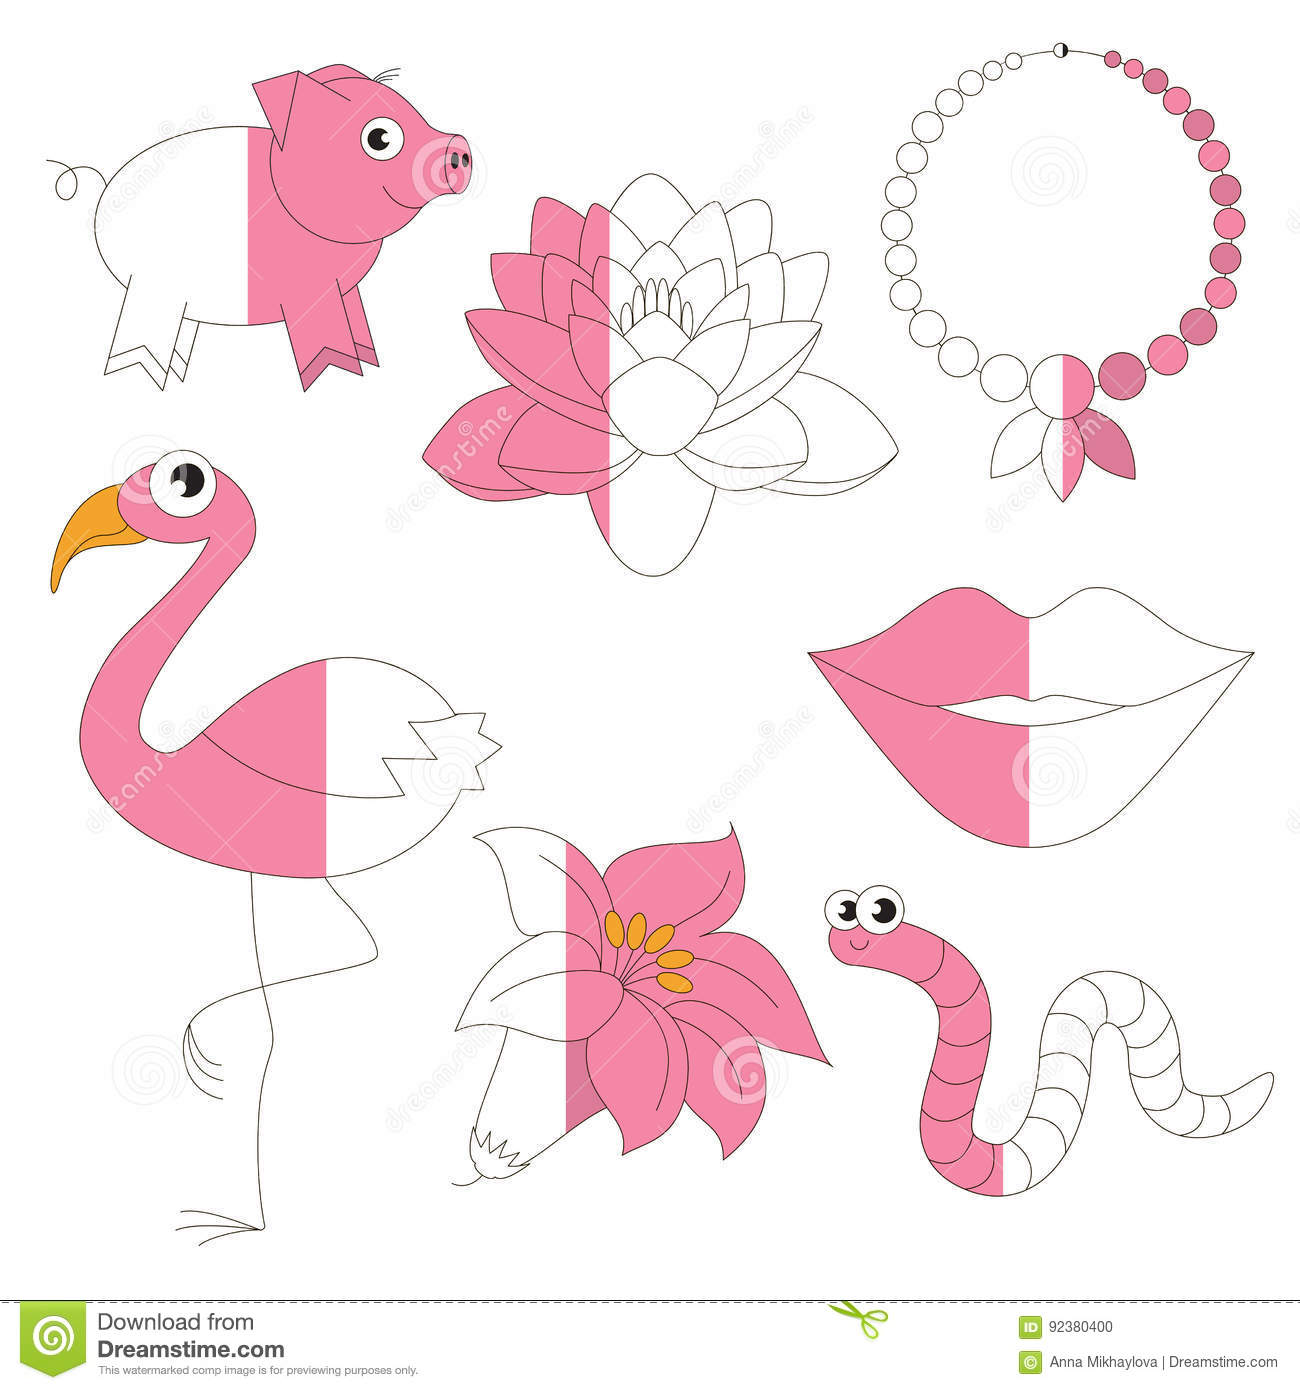 Fuchsia Coloring Page For Kids: Pink Color Objects, The Big Kid Game To Be Colored By